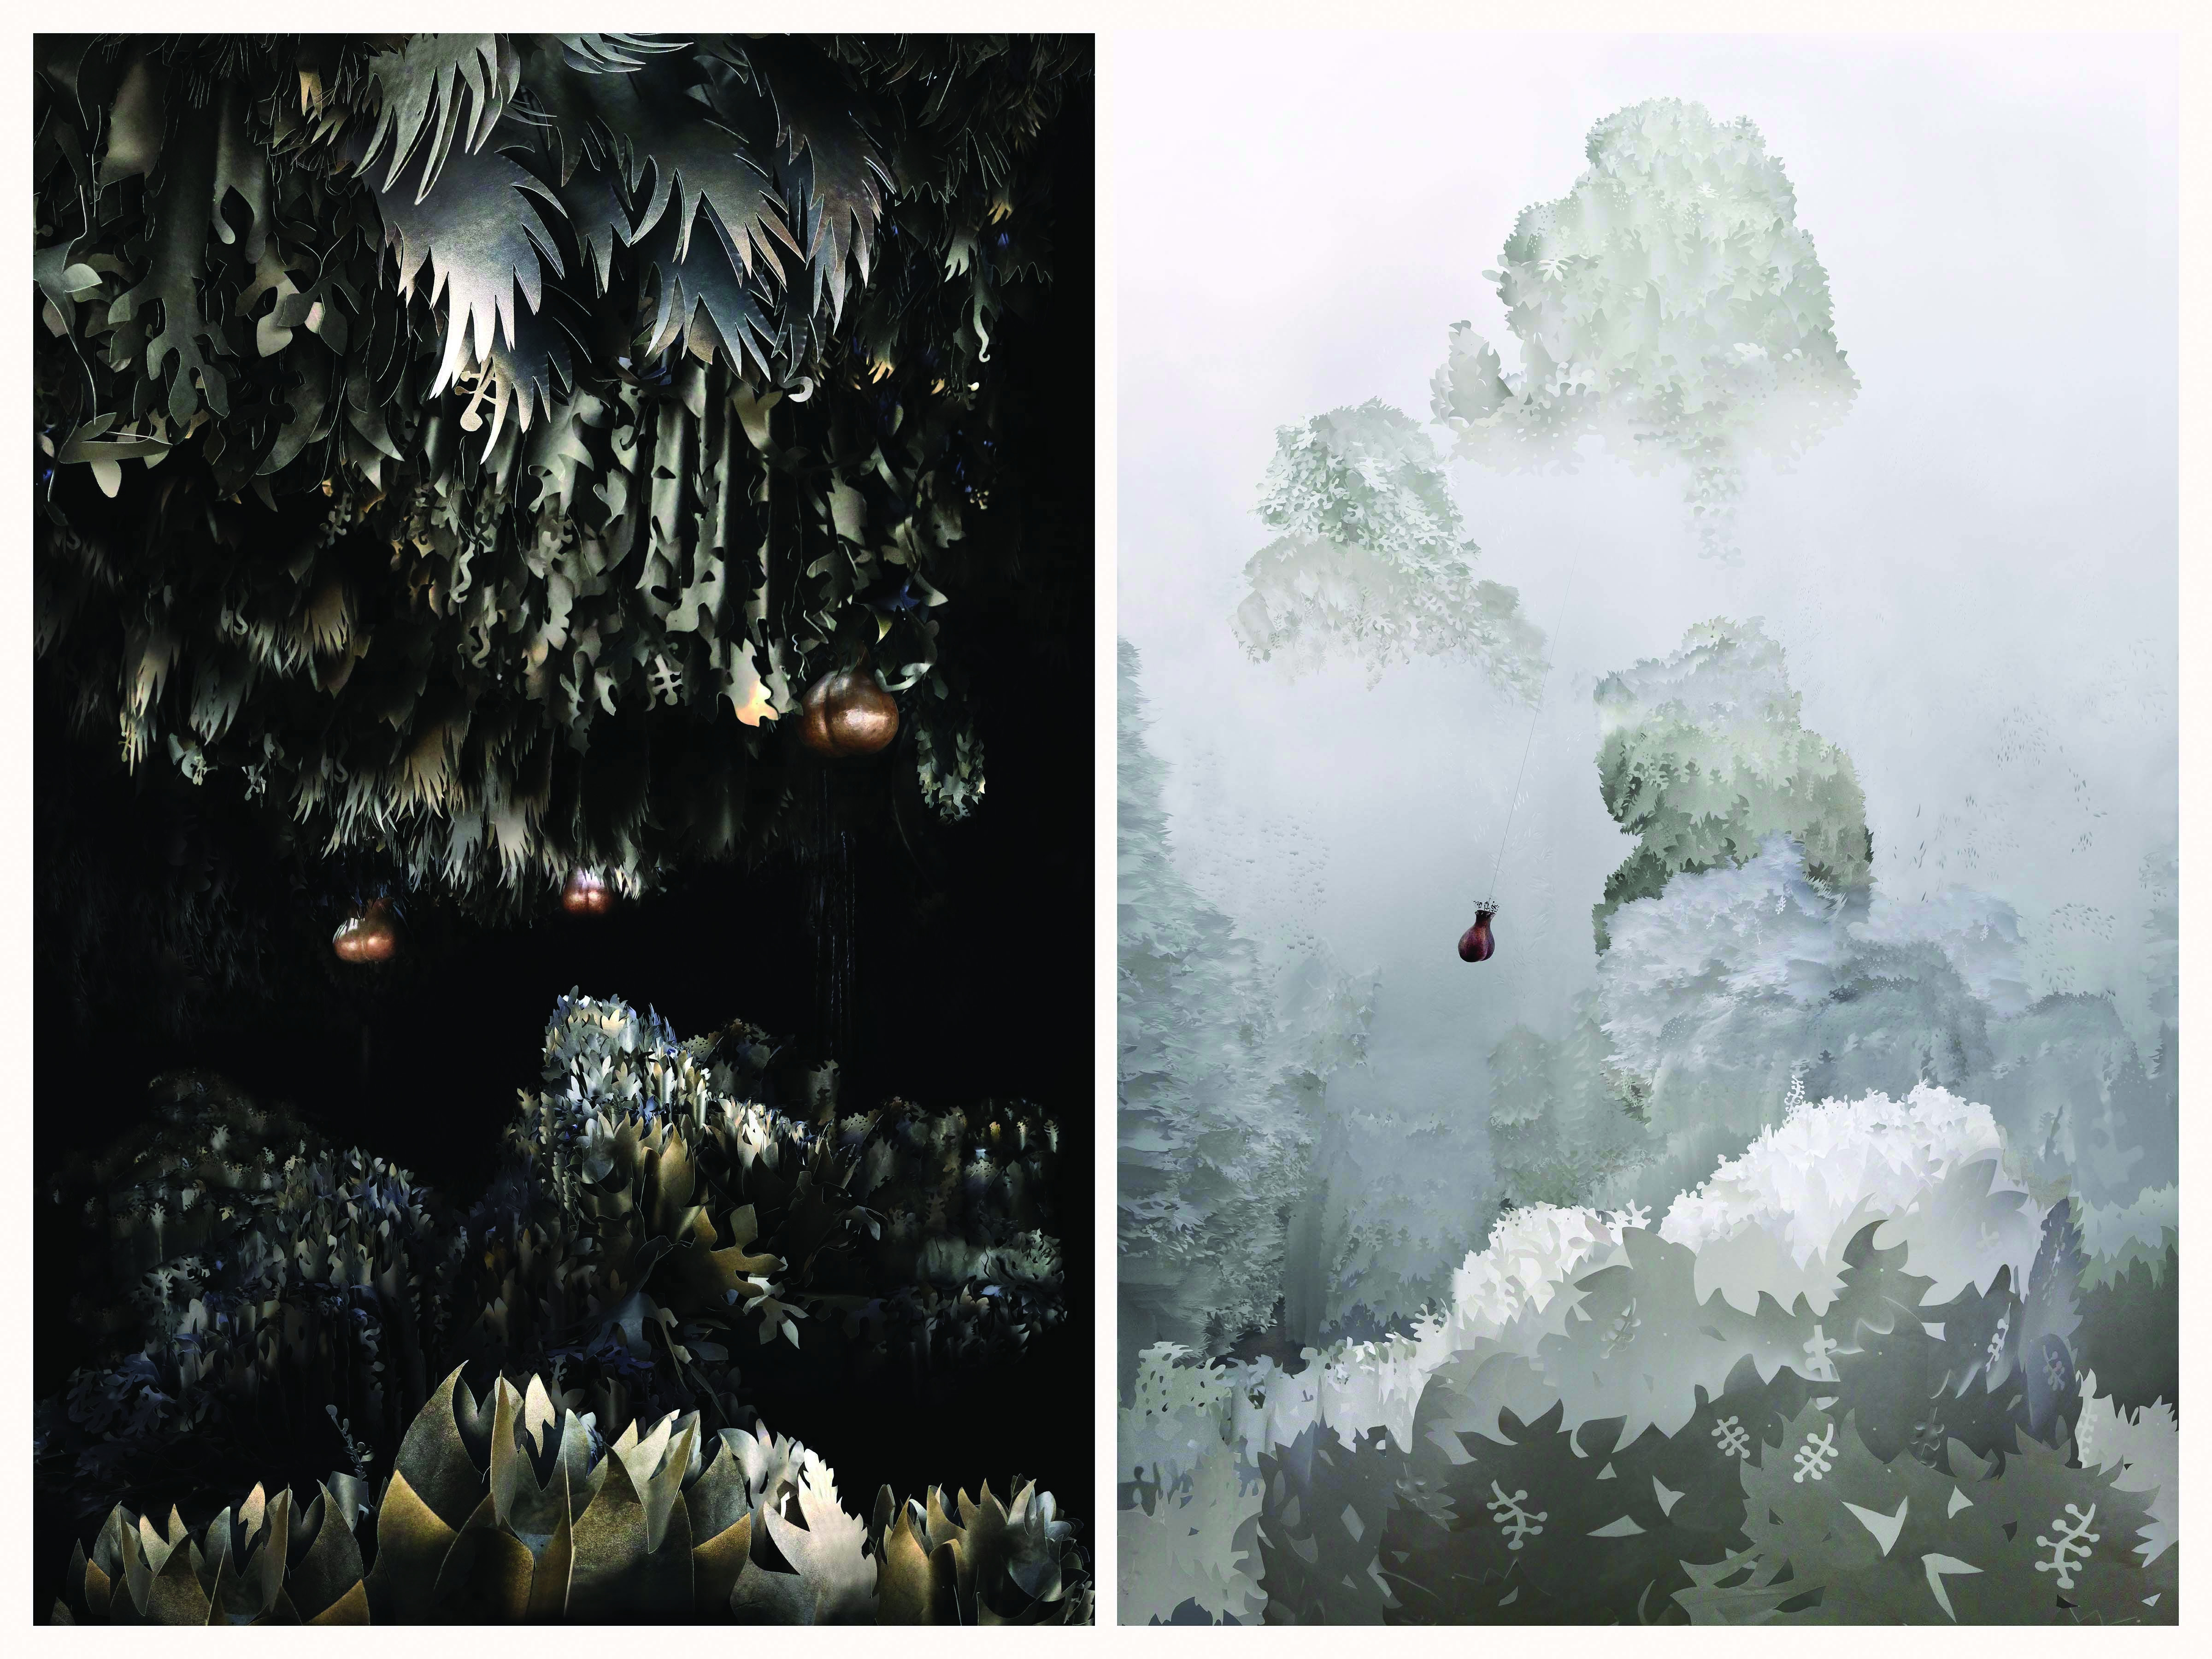 Jennifer Wen Ma,  <i>In the Dark and Light of Cry Joy Park,  detail, 44 x 56 inches each, sets of two panels </i>, digital print  on silk crepe